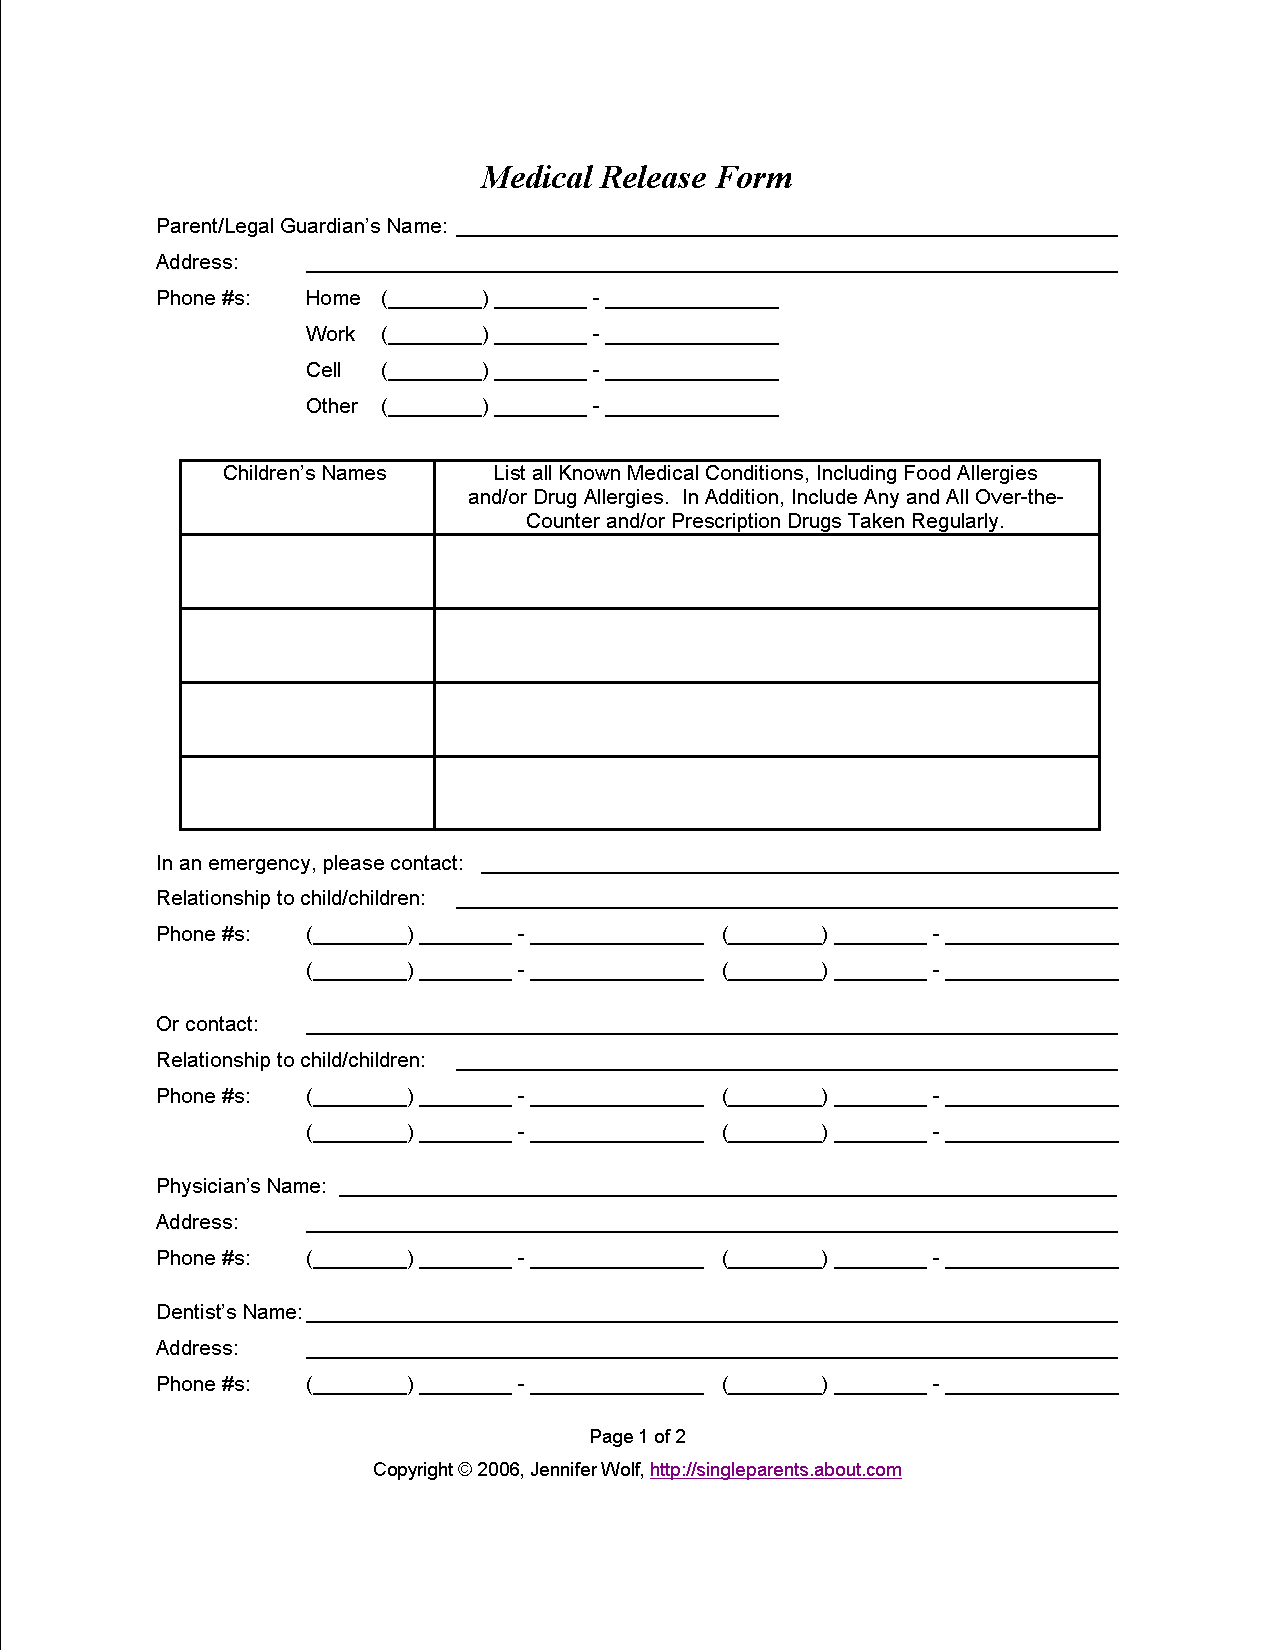 Do You Have A Medical Release Form For Your Kids? | Travel | Medical - Free Printable Caregiver Forms